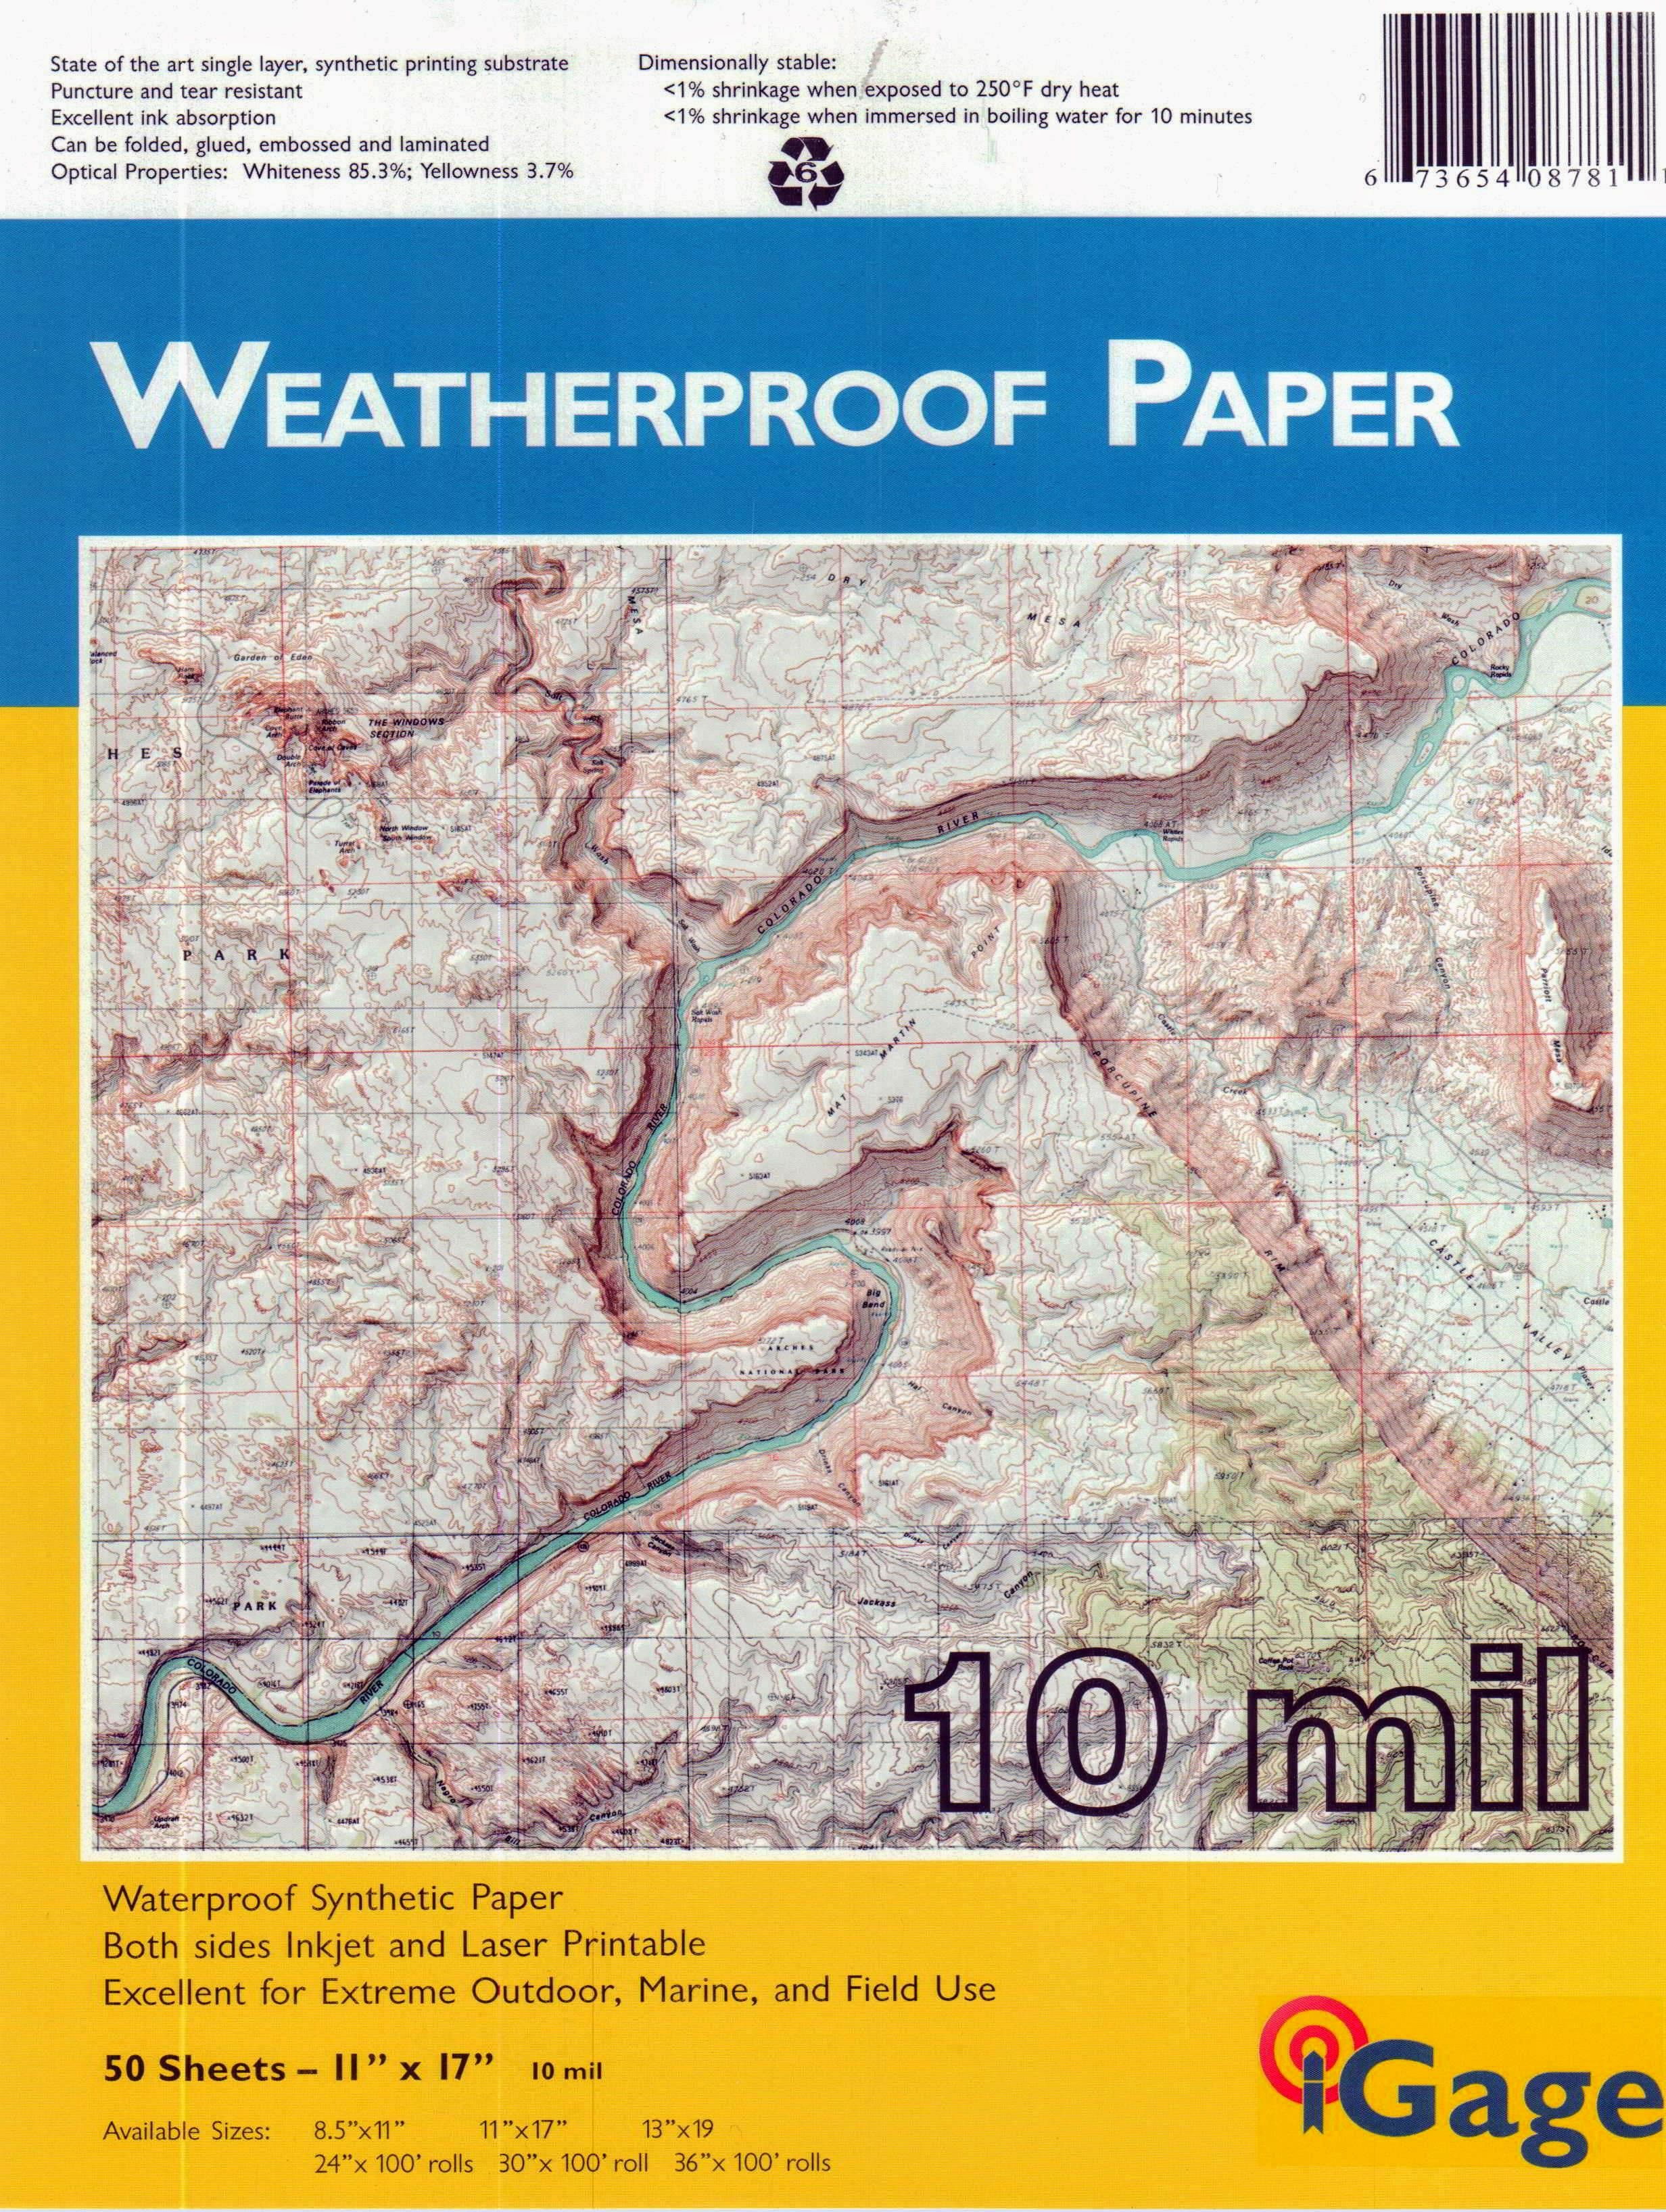 "iGage All-Weather Paper Laser/Inkjet 11"" x 17"" 50 sheets"